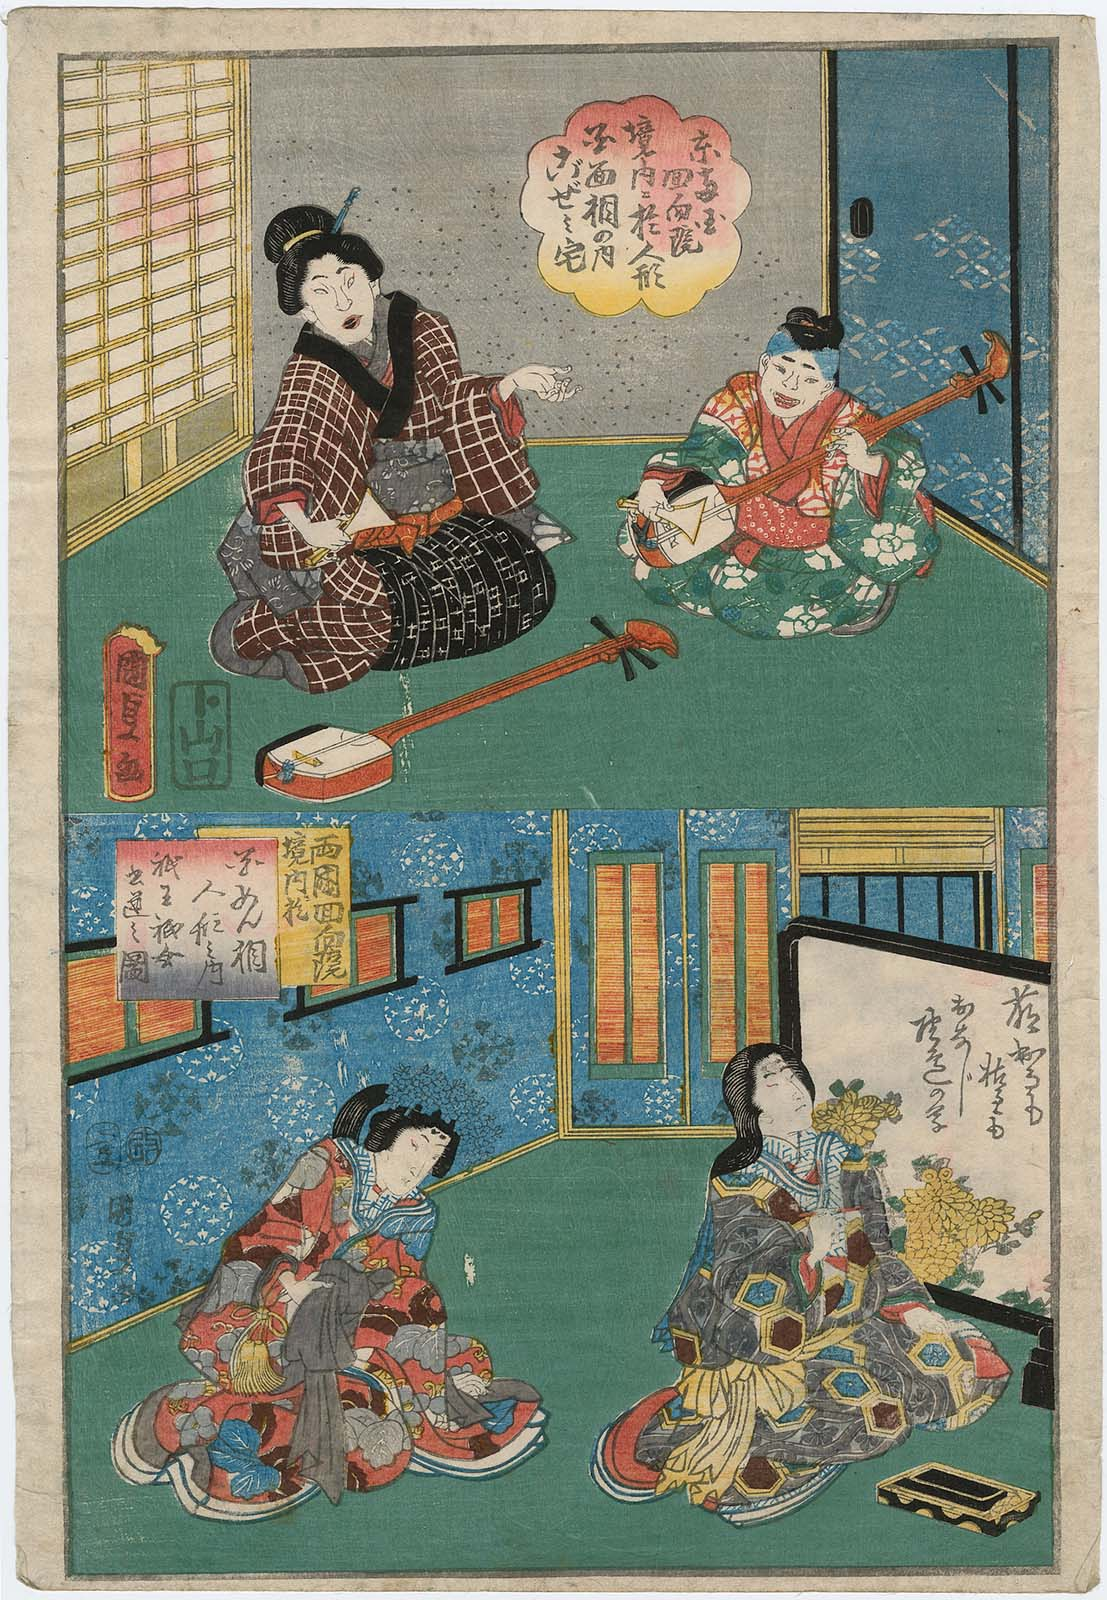 A traditional Japanese painting in two panels stacked one on top of the other. In the top panel, one woman appears to be teaching the other how to play the biwa (lute). In the bottom panel, a third woman appears to be having a one-on-one lesson with someone whose gender is harder to determine. The latter is writing on a board.